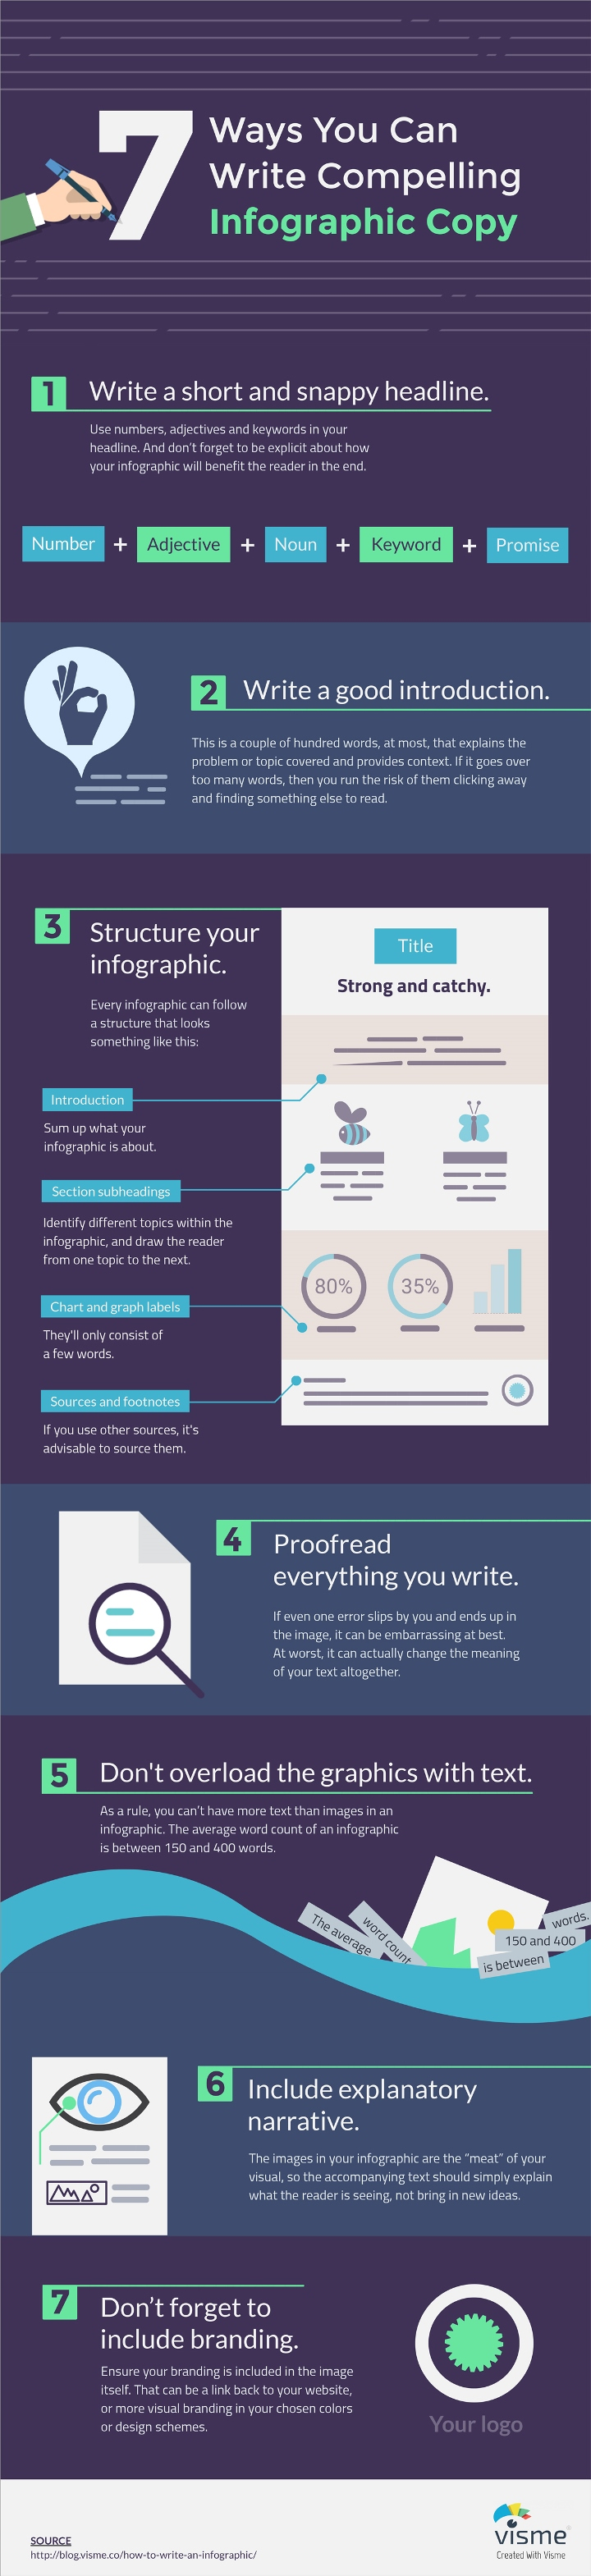 An Infographic on the 7 Steps to Writing Compelling Infographic Copy